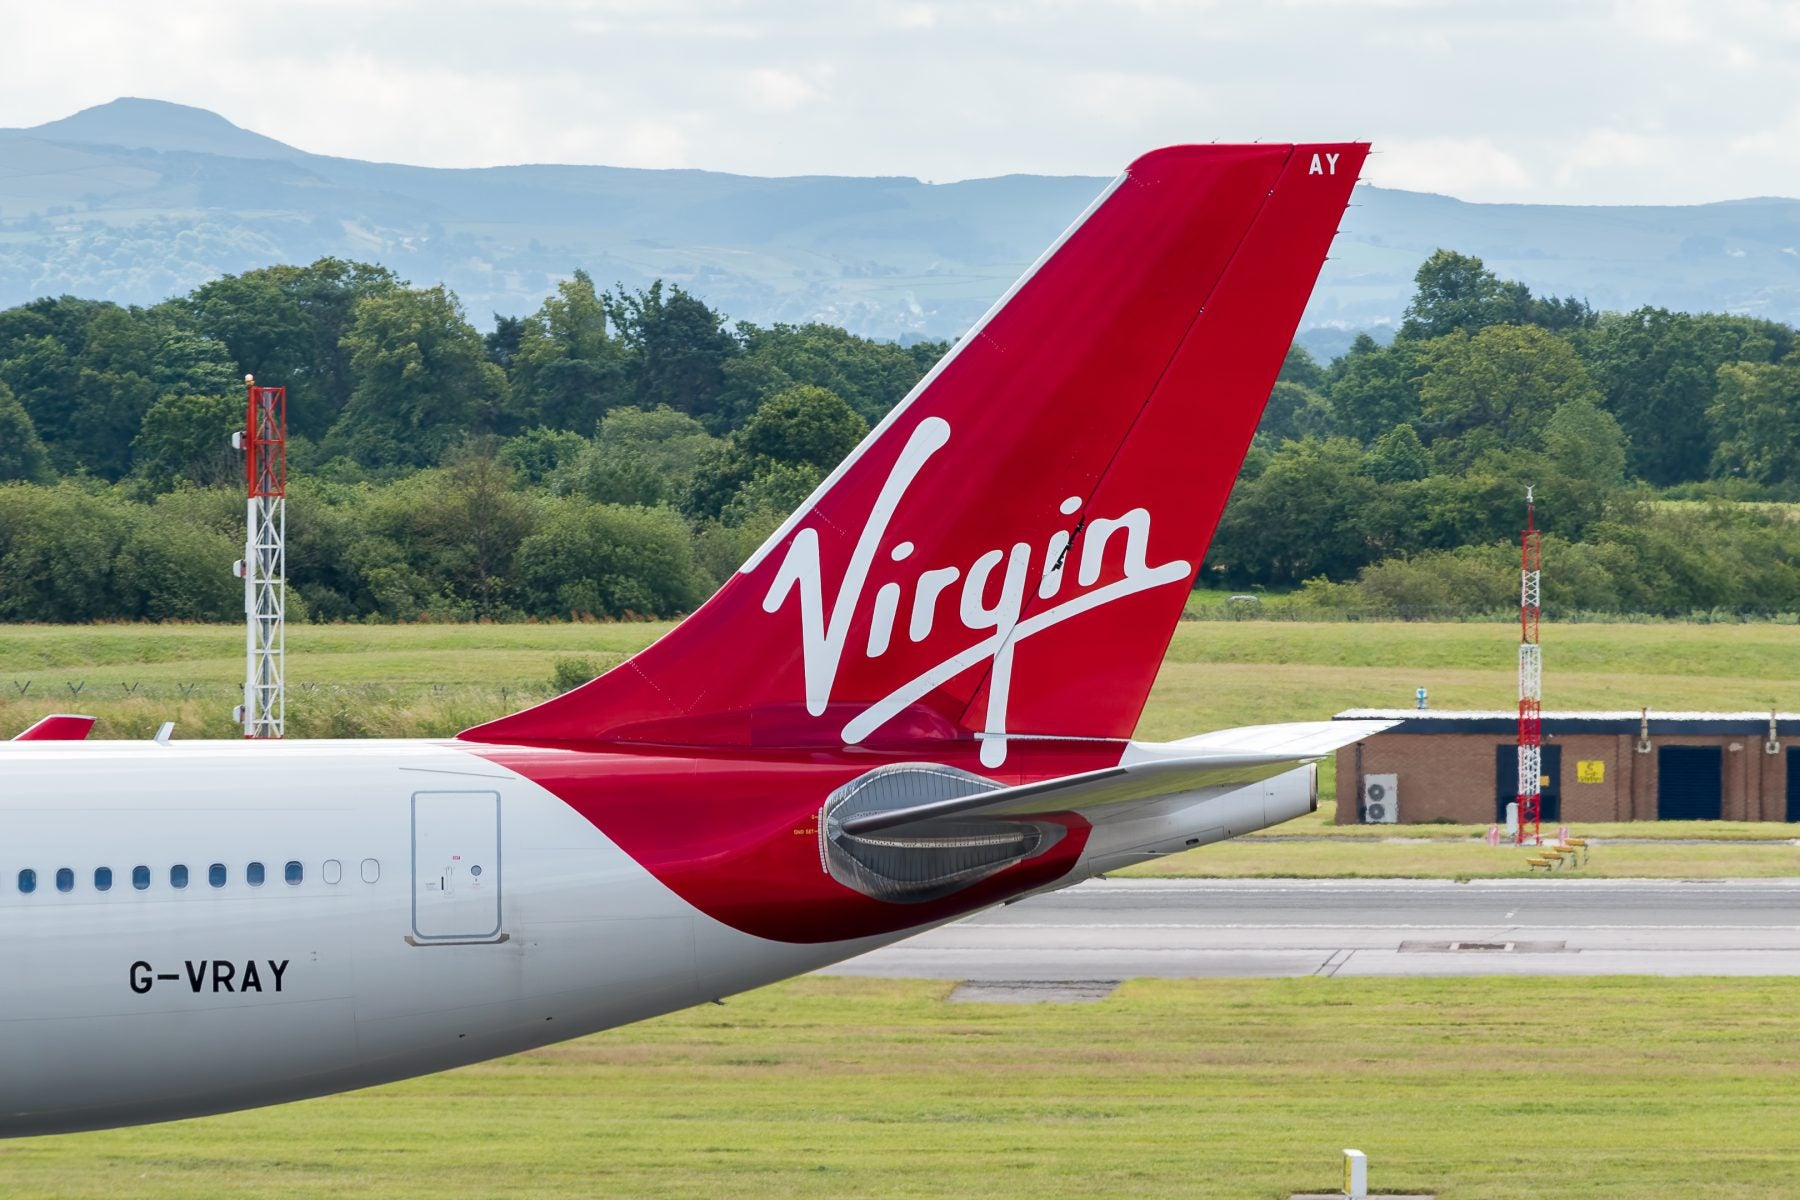 Virgin Atlantic credit card review: Earn valuable miles for partner airline deals